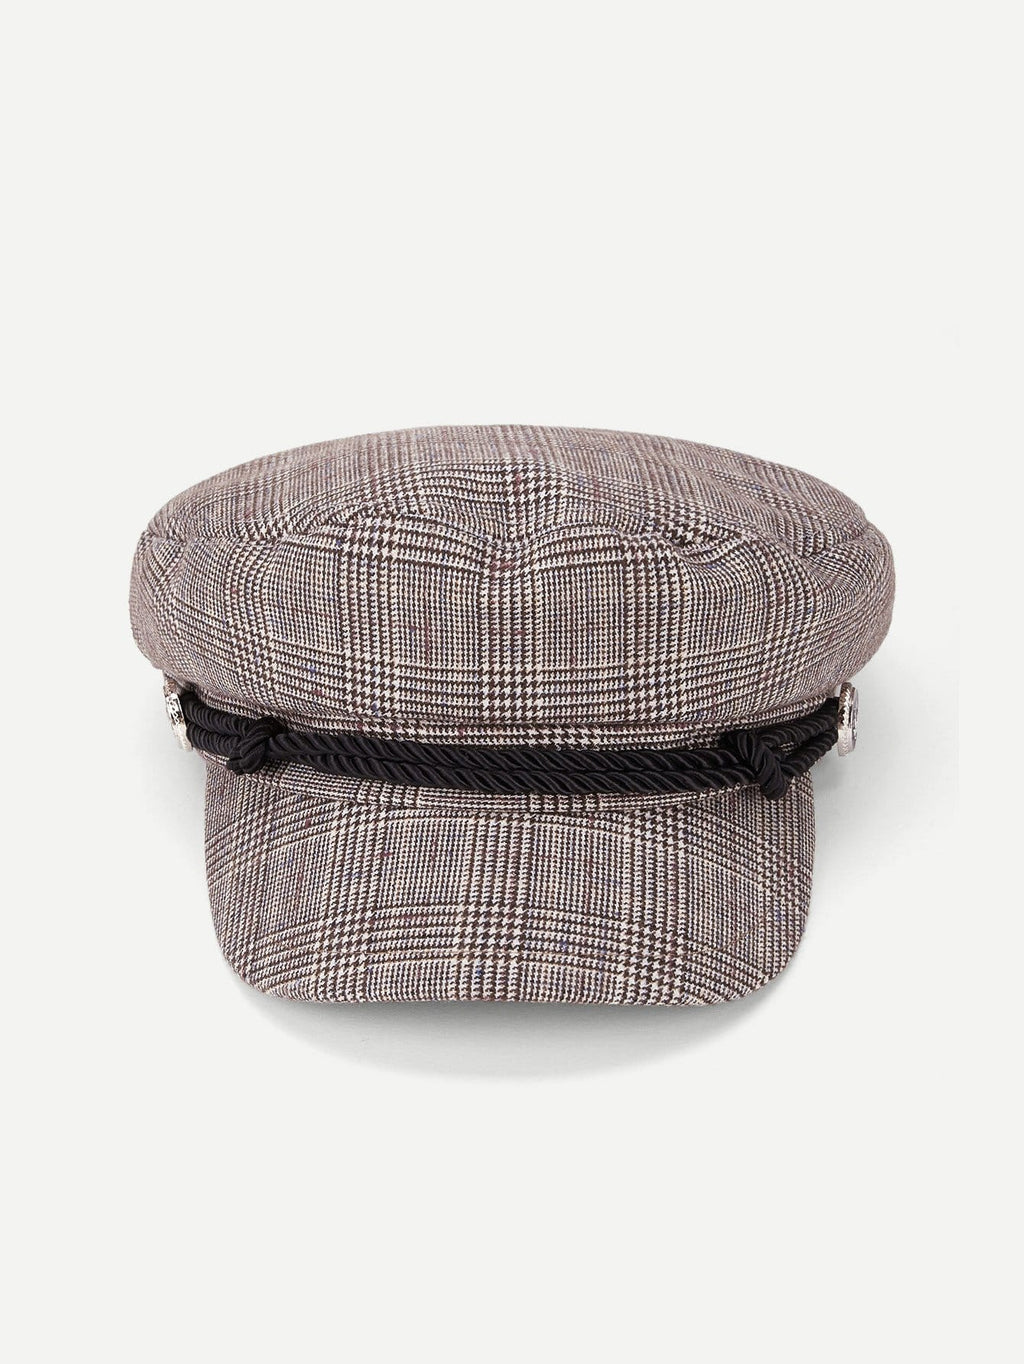 Plaid Bäker Jungen Hut